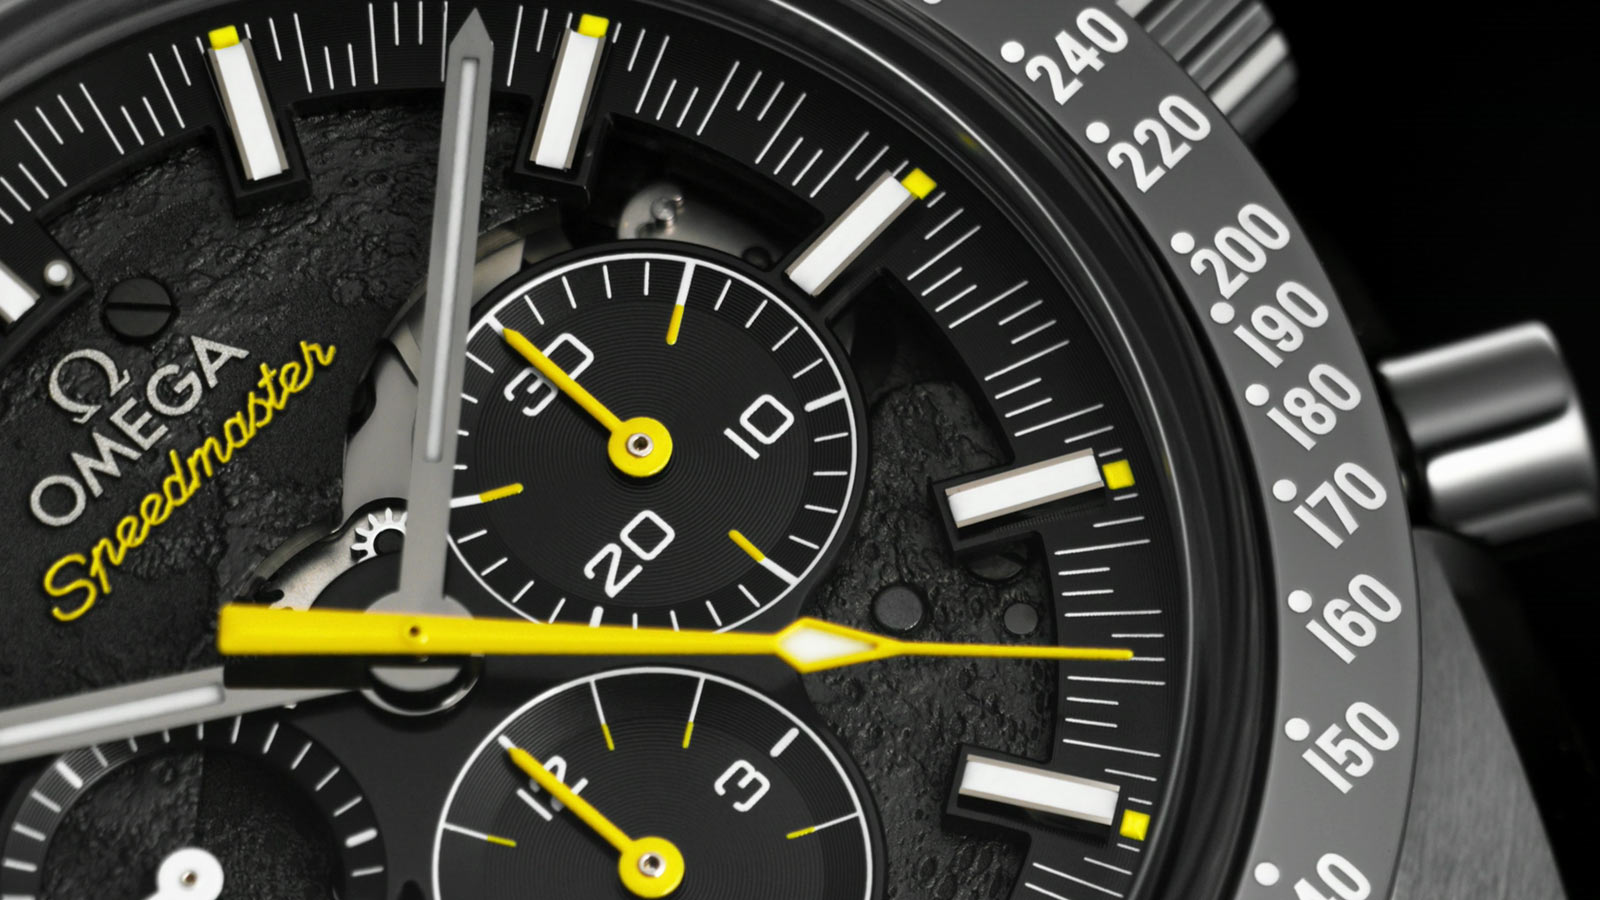 Speedmaster Moonwatch - Apollo 8 - Baselworld 2018 - Watches - Video - 48636